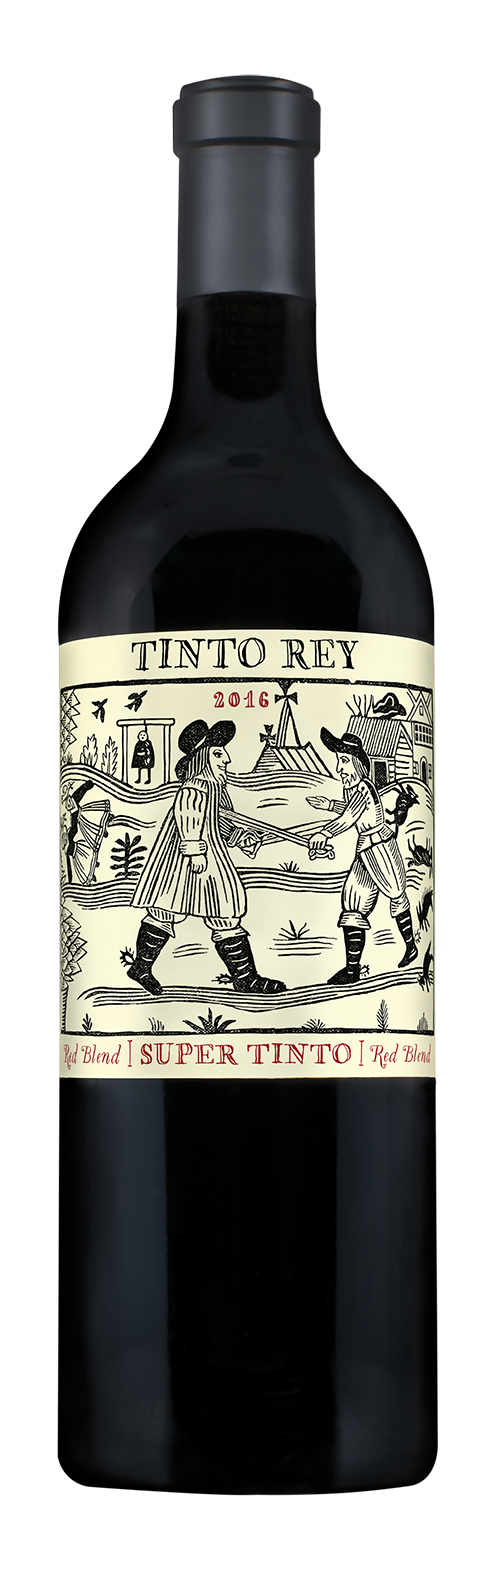 Product Image for 2017 Tinto Rey Estate Bottled Super Tinto Red Blend